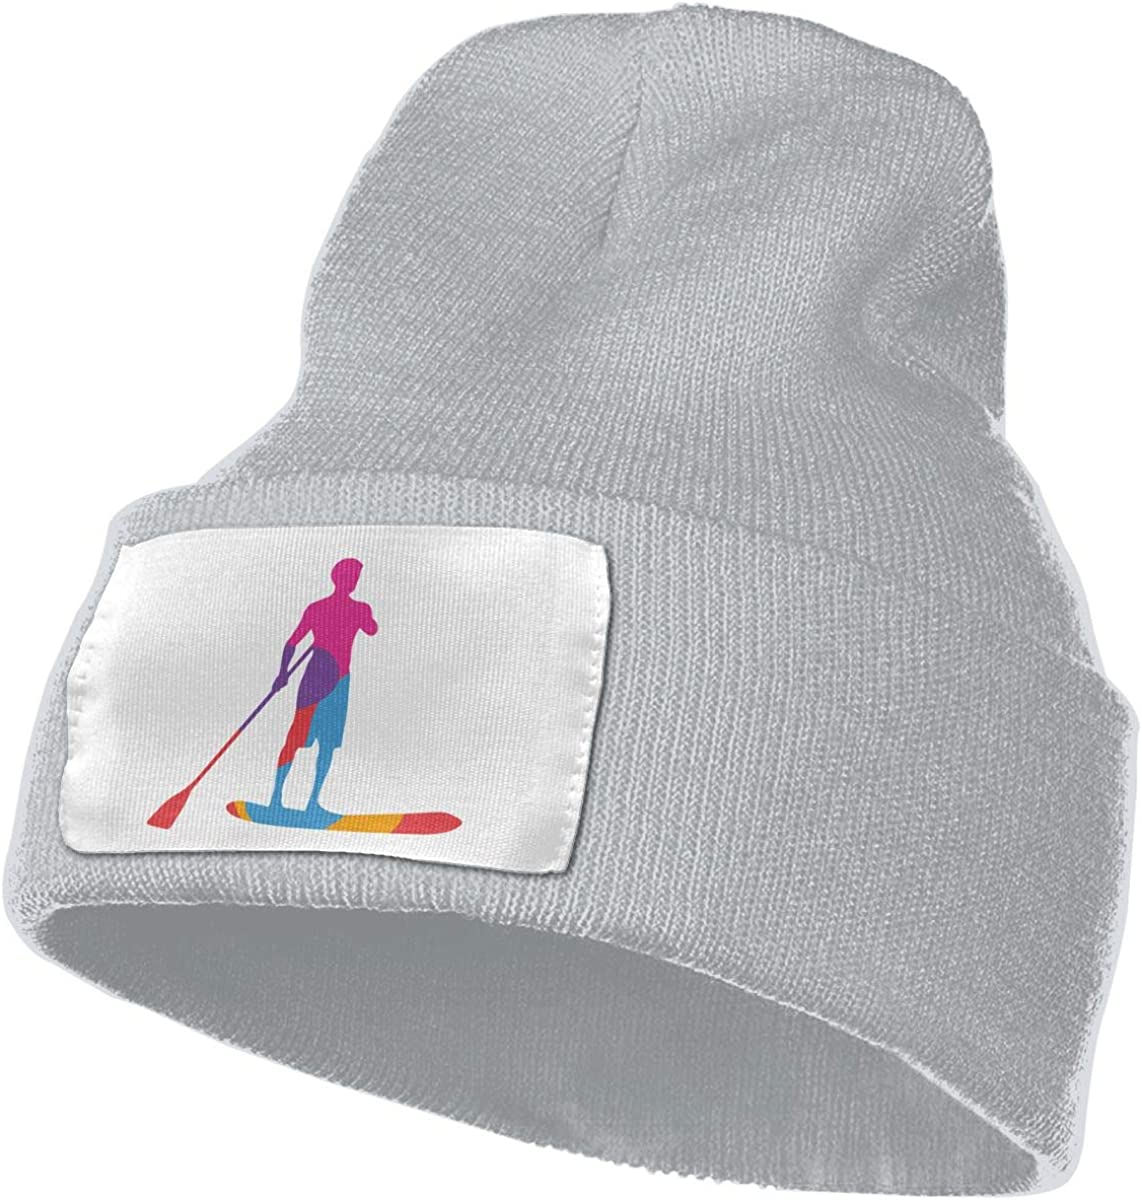 TAOMAP89 Standup Paddleboard Women and Men Skull Caps Winter Warm Stretchy Knit Beanie Hats